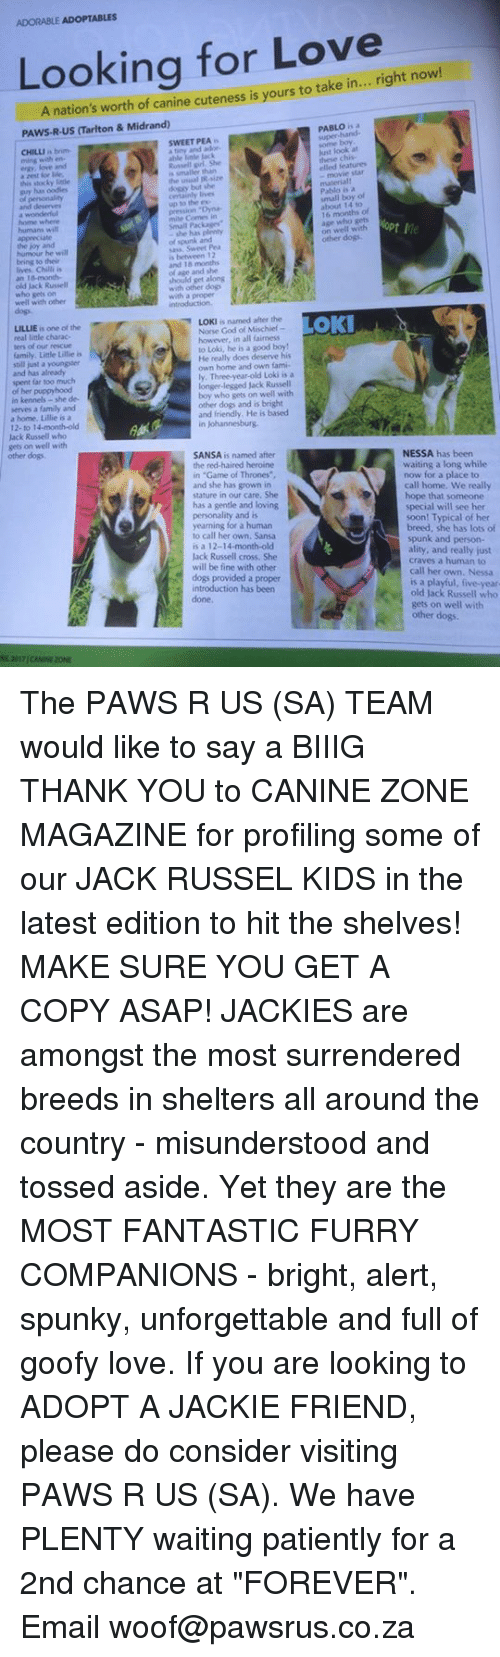 """Dogs, Family, and Game of Thrones: ADORABLE ADOPTABLES  Looking for Love  cuteness is yours to take A nation's right now  PAws R.US Tarlton & Midrand)  SWEET PEA  a Mest for lile.  the usual R wire  but the  Pabla is a  14 to  small Packaere""""  on wel with pt Me  and 18  lives, Chilli is  of age and she  old Jack Russell  well with other  is named after the  Norse God TOKI  LILLIE  is one of the  ters of our rescue  to Loki, he is a good boy!  family. Little Lille is  He really does deserve his  still just a youngster  home and own fami""""  Three-year-old Loki is a  longer legged Jack Russell  boy who gets on well with  in kennels she de-  other dogs and is bright  and friendly, He is based  a home. Lille is a  12 to 1  Jack Russell who  gets on well with  NESSA has been  SANSA is named after  waiting a long while  the red-haired heroine  in """"Game of Thrones  now for a place to  and she has grown in  call home. We really  stature in our care, She  hope that someone  has a gentle and loving  special will see her  soon! Typical of her  breed, she has lots of  to call her own. Sansa  spunk and person-  is a 12-14-month-old  ality, and really just  Jack Russell cross. She  craves a human to  will be fine with other  call her own. Nessa  dogs provided a proper  is a playful, five-year  introduction has been  old Jack Russell who  gets on well with  other dogs. The PAWS R US (SA) TEAM would like to say a BIIIG THANK YOU to CANINE ZONE MAGAZINE for profiling some of our JACK RUSSEL KIDS in the latest edition to hit the shelves! MAKE SURE YOU GET A COPY ASAP!  JACKIES are amongst the most surrendered breeds in shelters all around the country - misunderstood and tossed aside. Yet they are the MOST FANTASTIC FURRY COMPANIONS - bright, alert, spunky, unforgettable and full of goofy love. If you are looking to ADOPT A JACKIE FRIEND, please do consider visiting PAWS R US (SA). We have PLENTY waiting patiently for a 2nd chance at """"FOREVER"""". Email woof@pawsrus.co.za"""